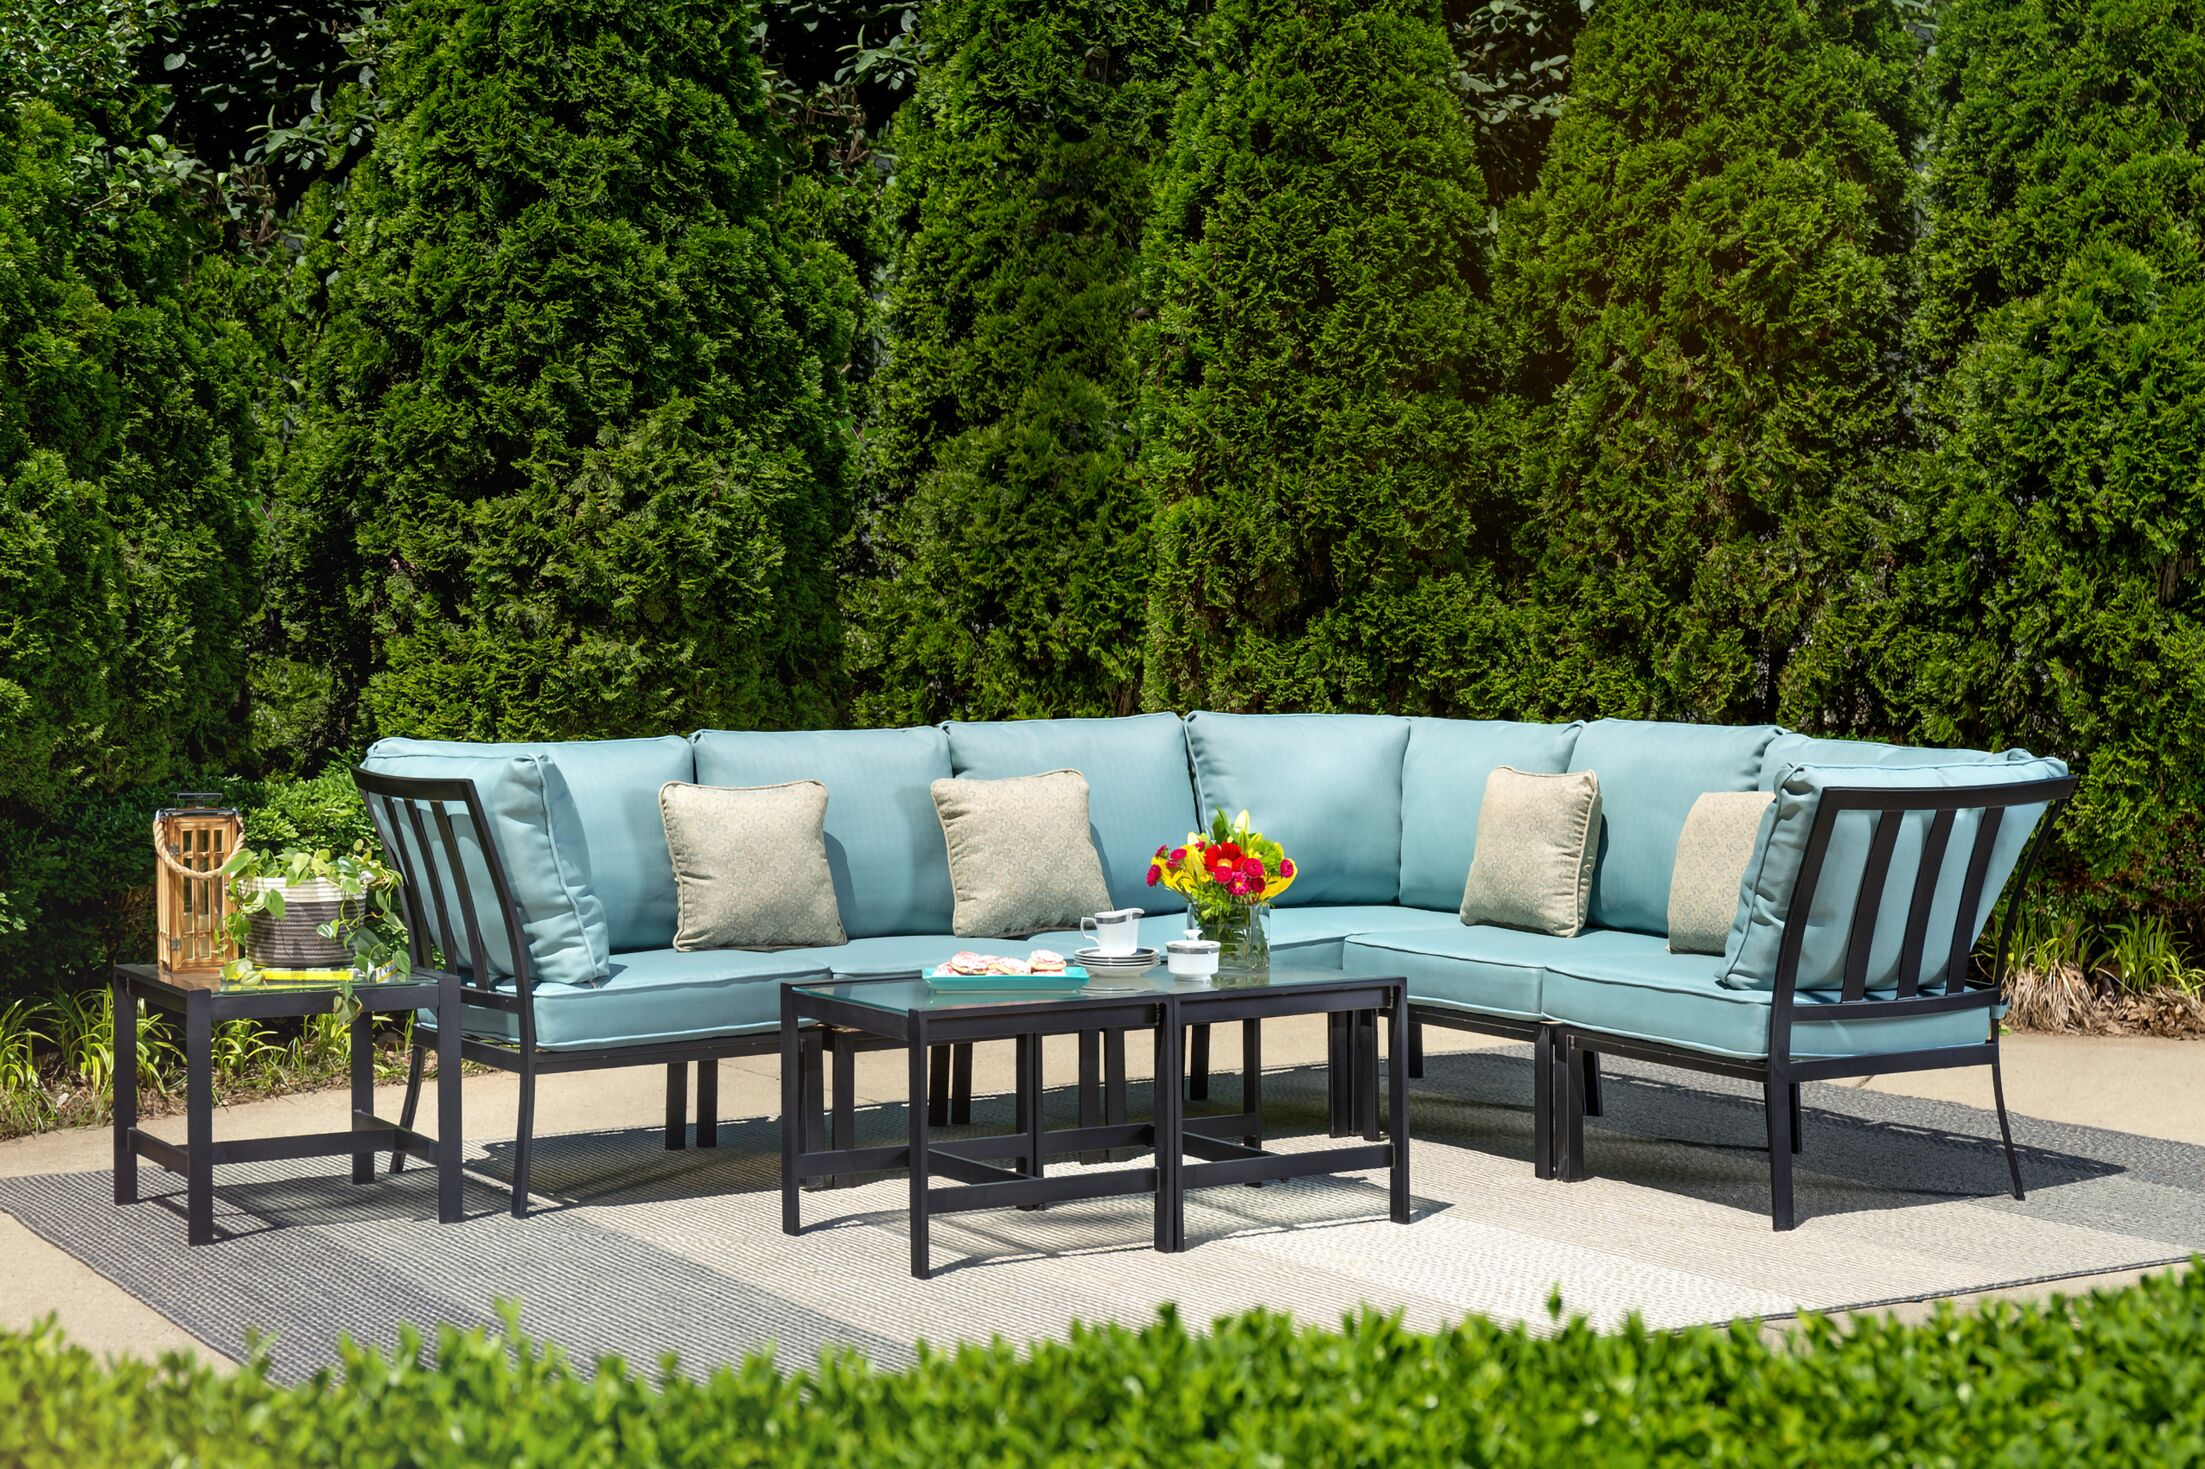 Avalon 9 Piece Rattan Sectional Set with Cushions Cushion Color: Ocean Blue